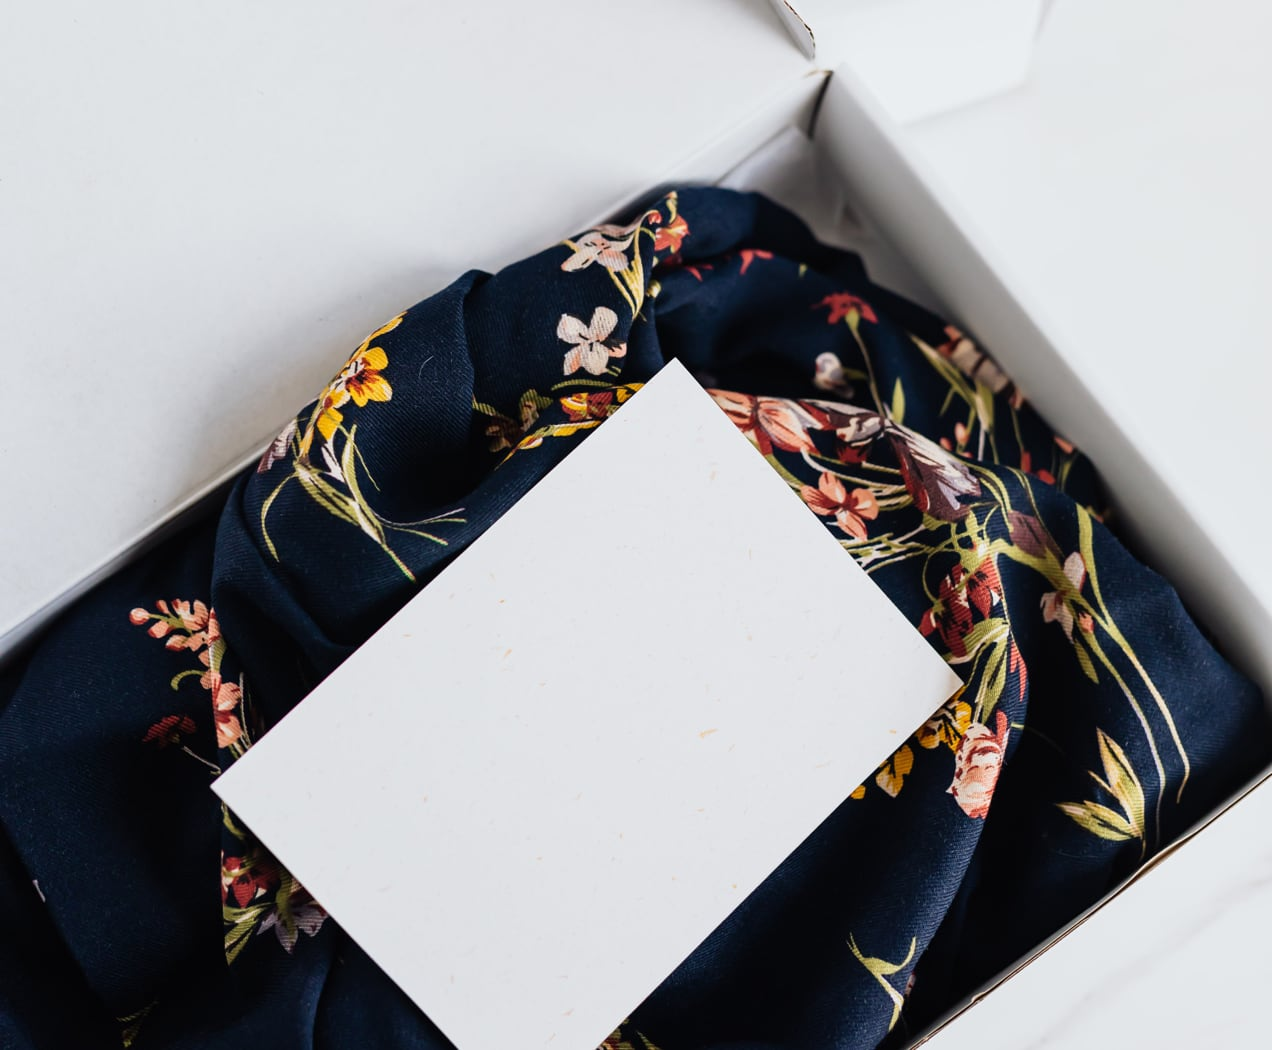 fashion product packed into a box for shipping